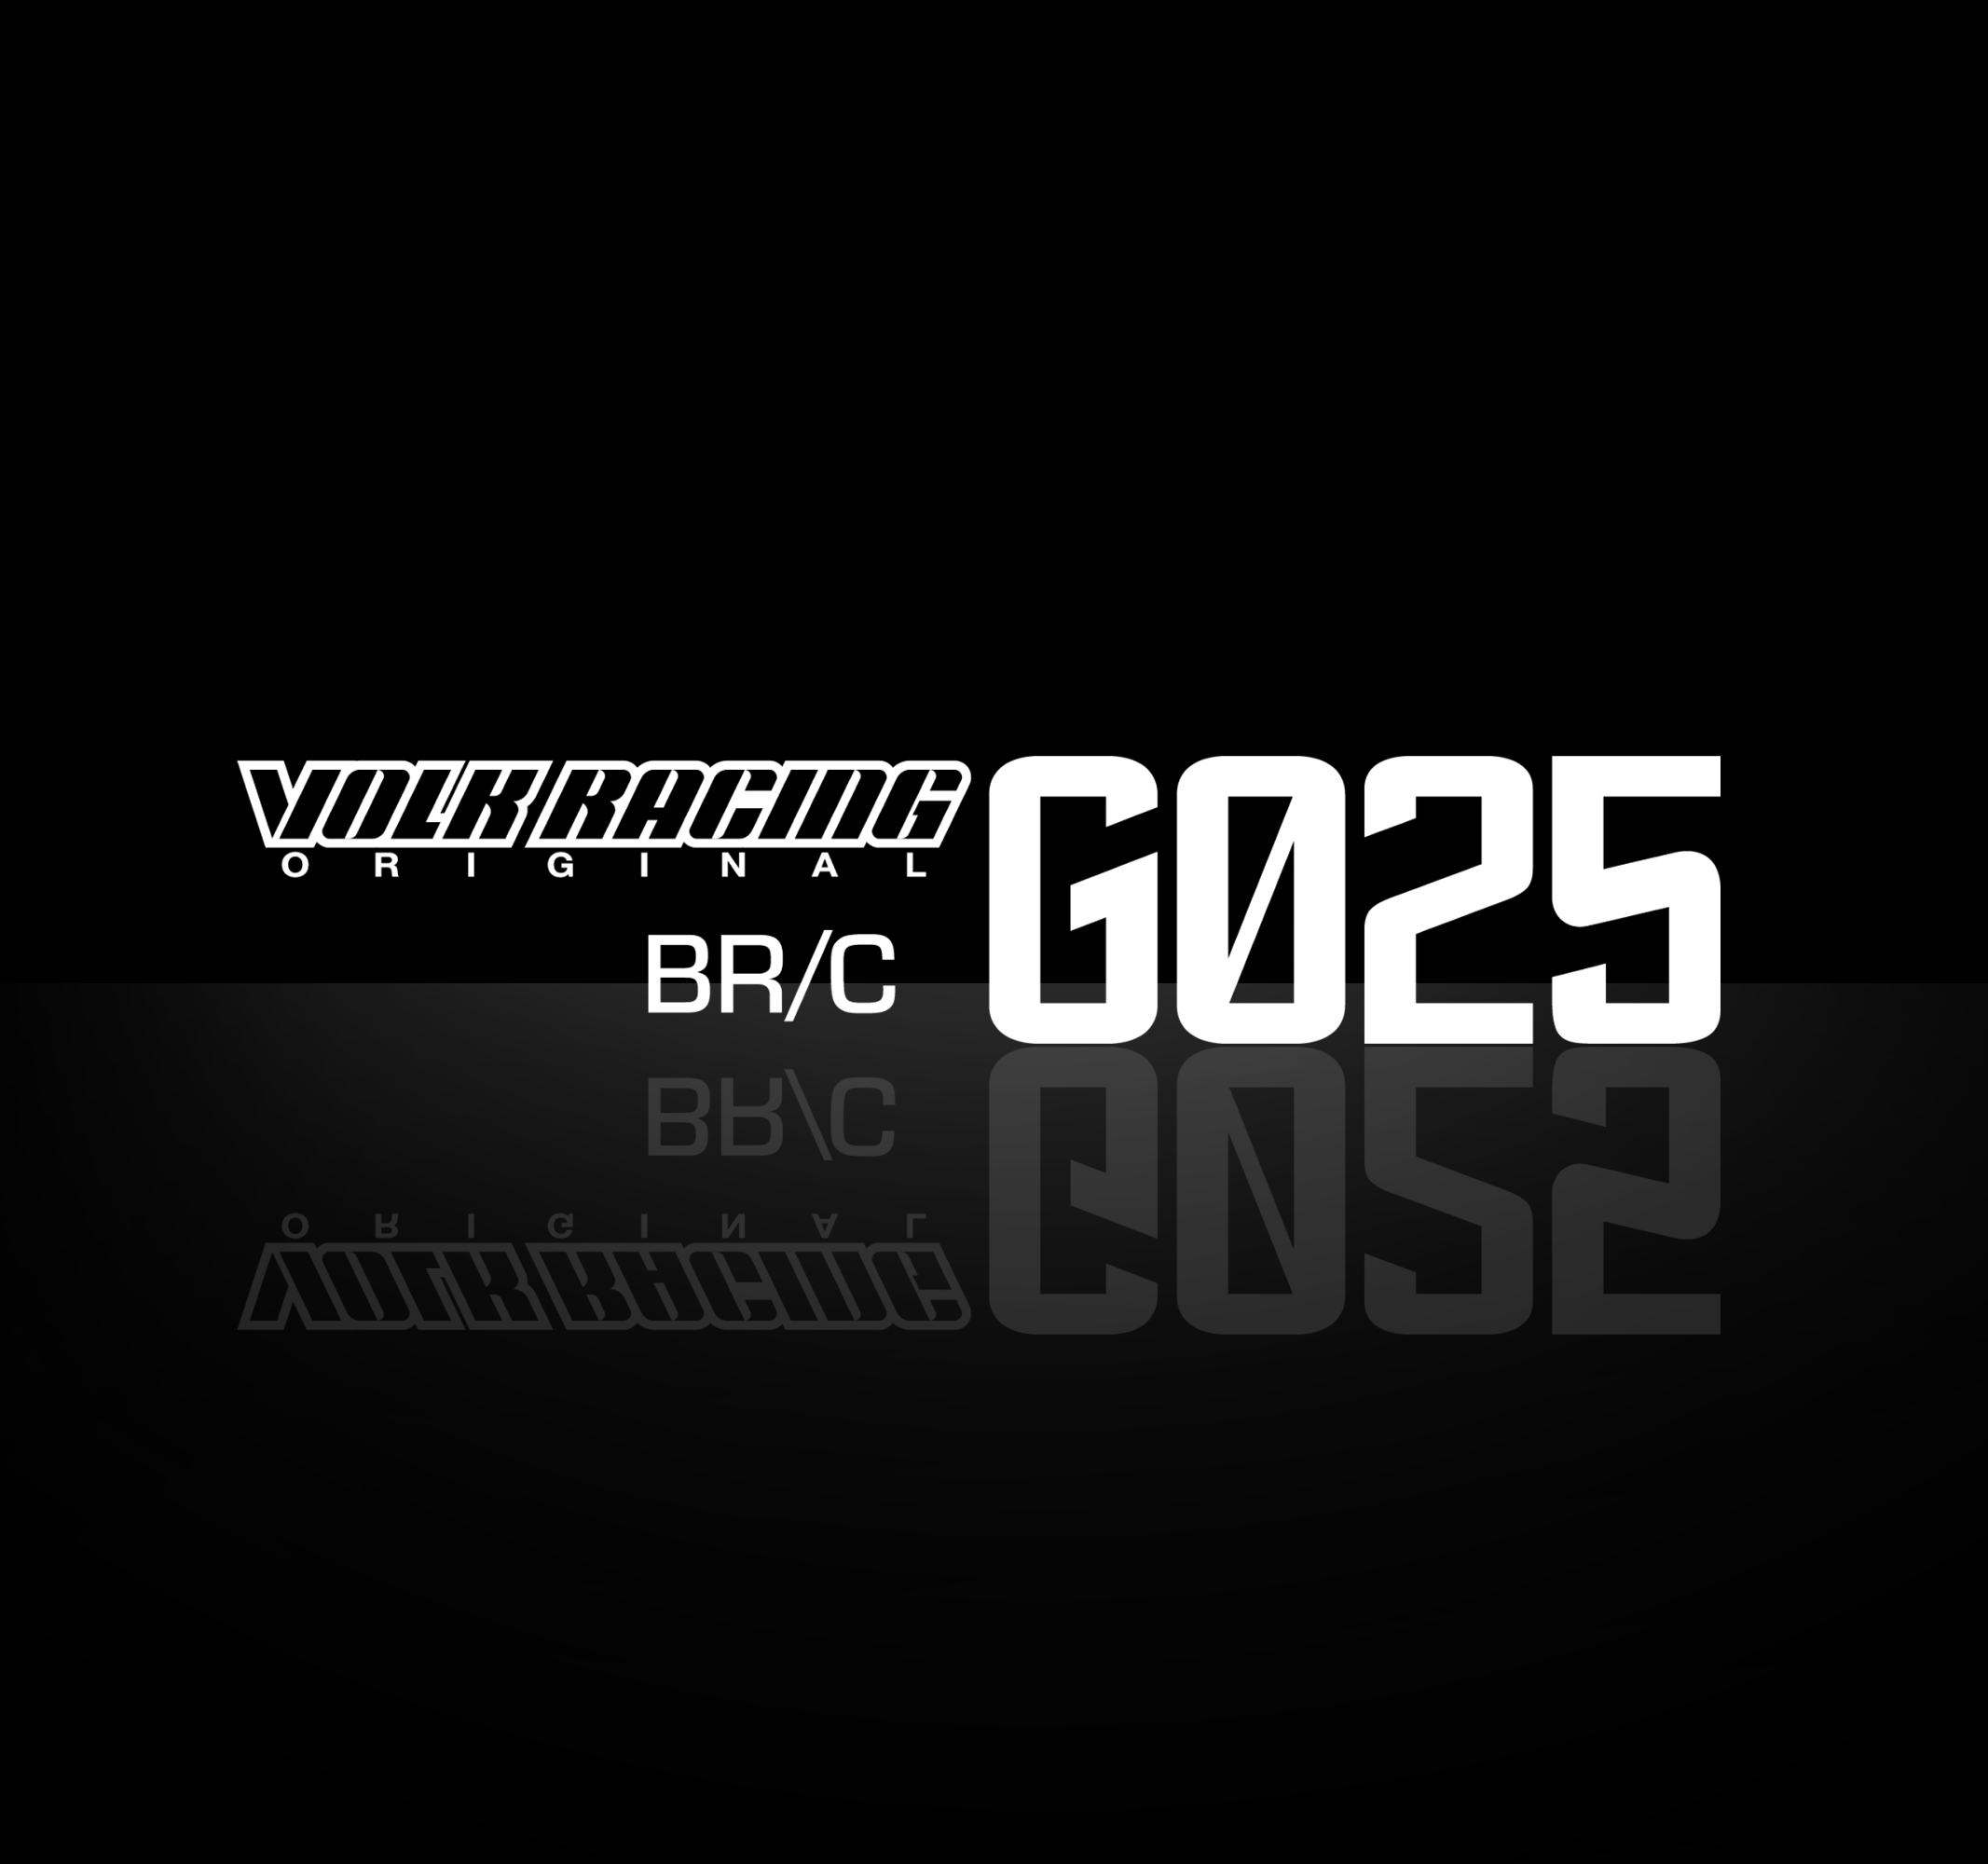 G025 BR/C